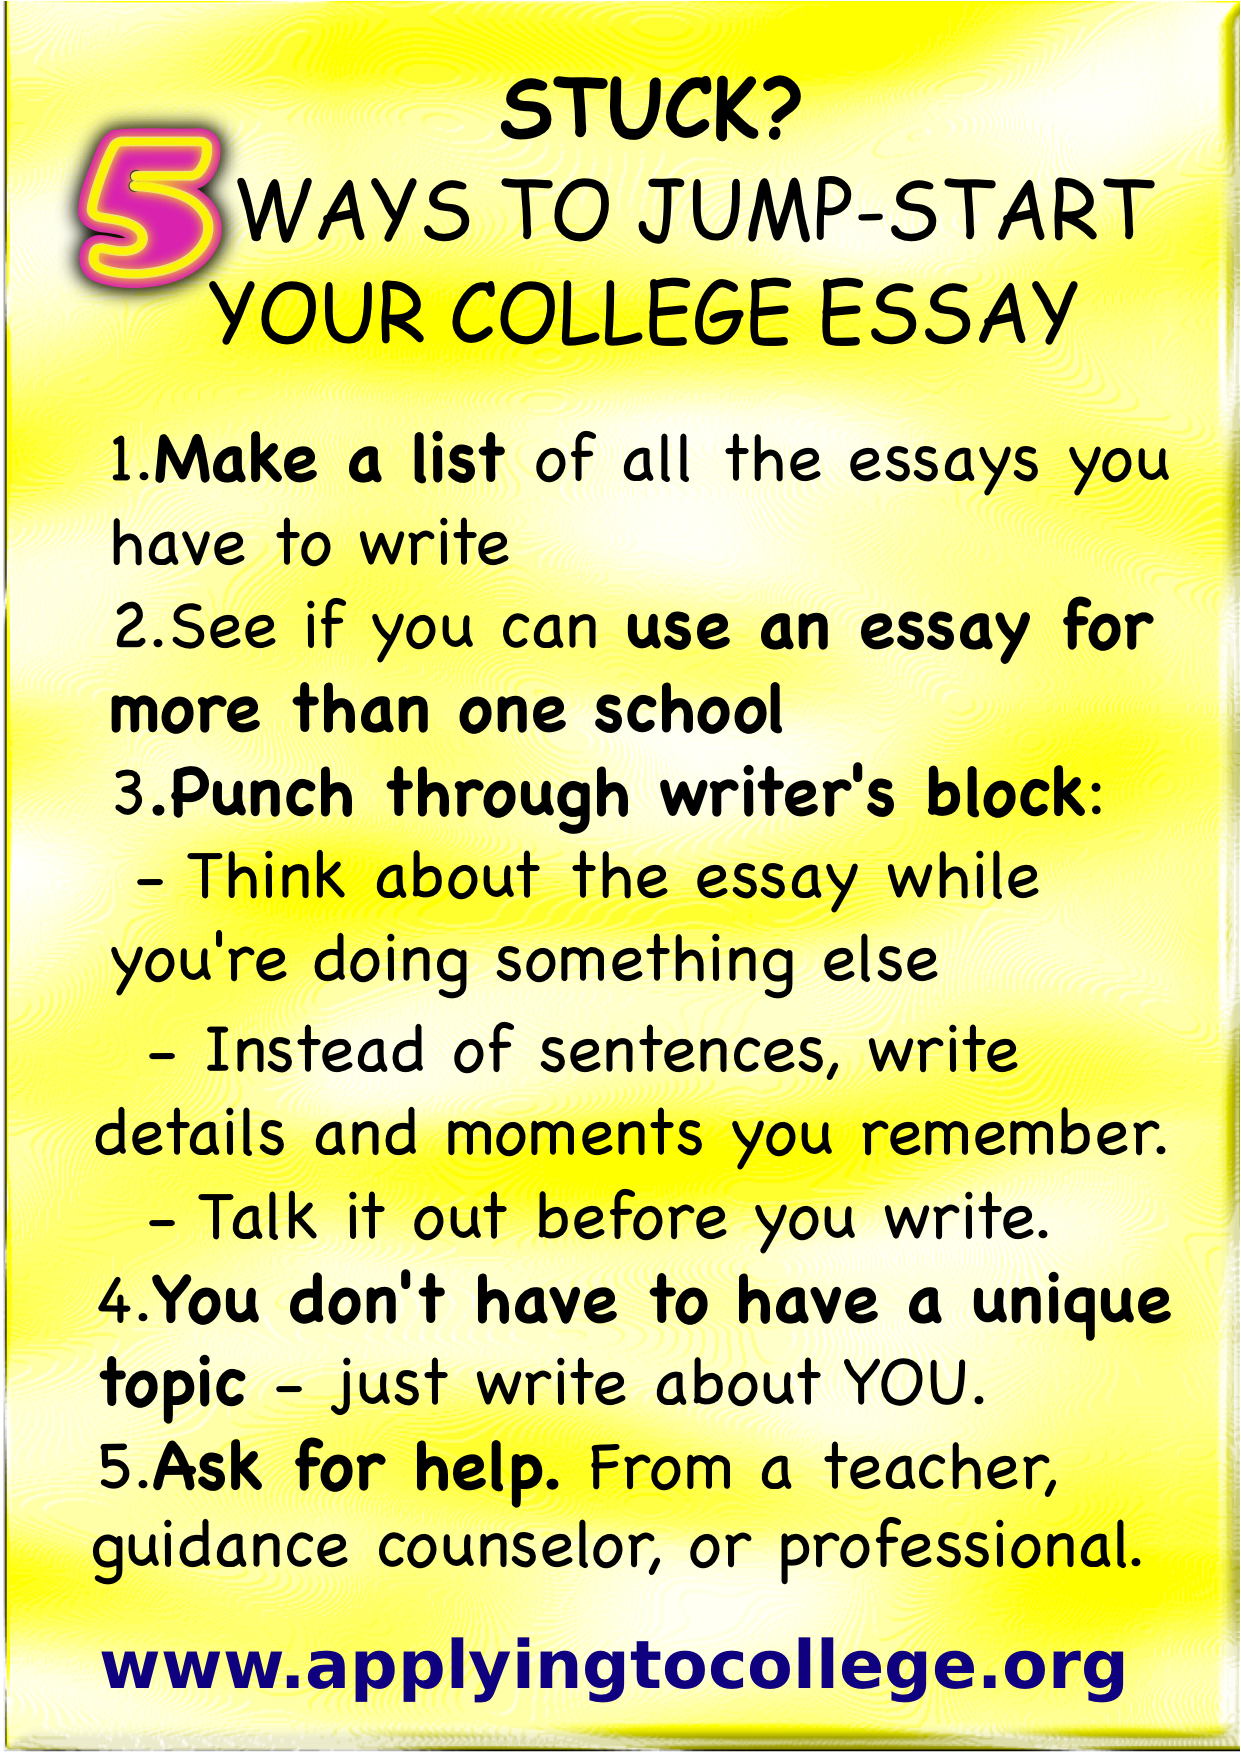 mit college essay tips